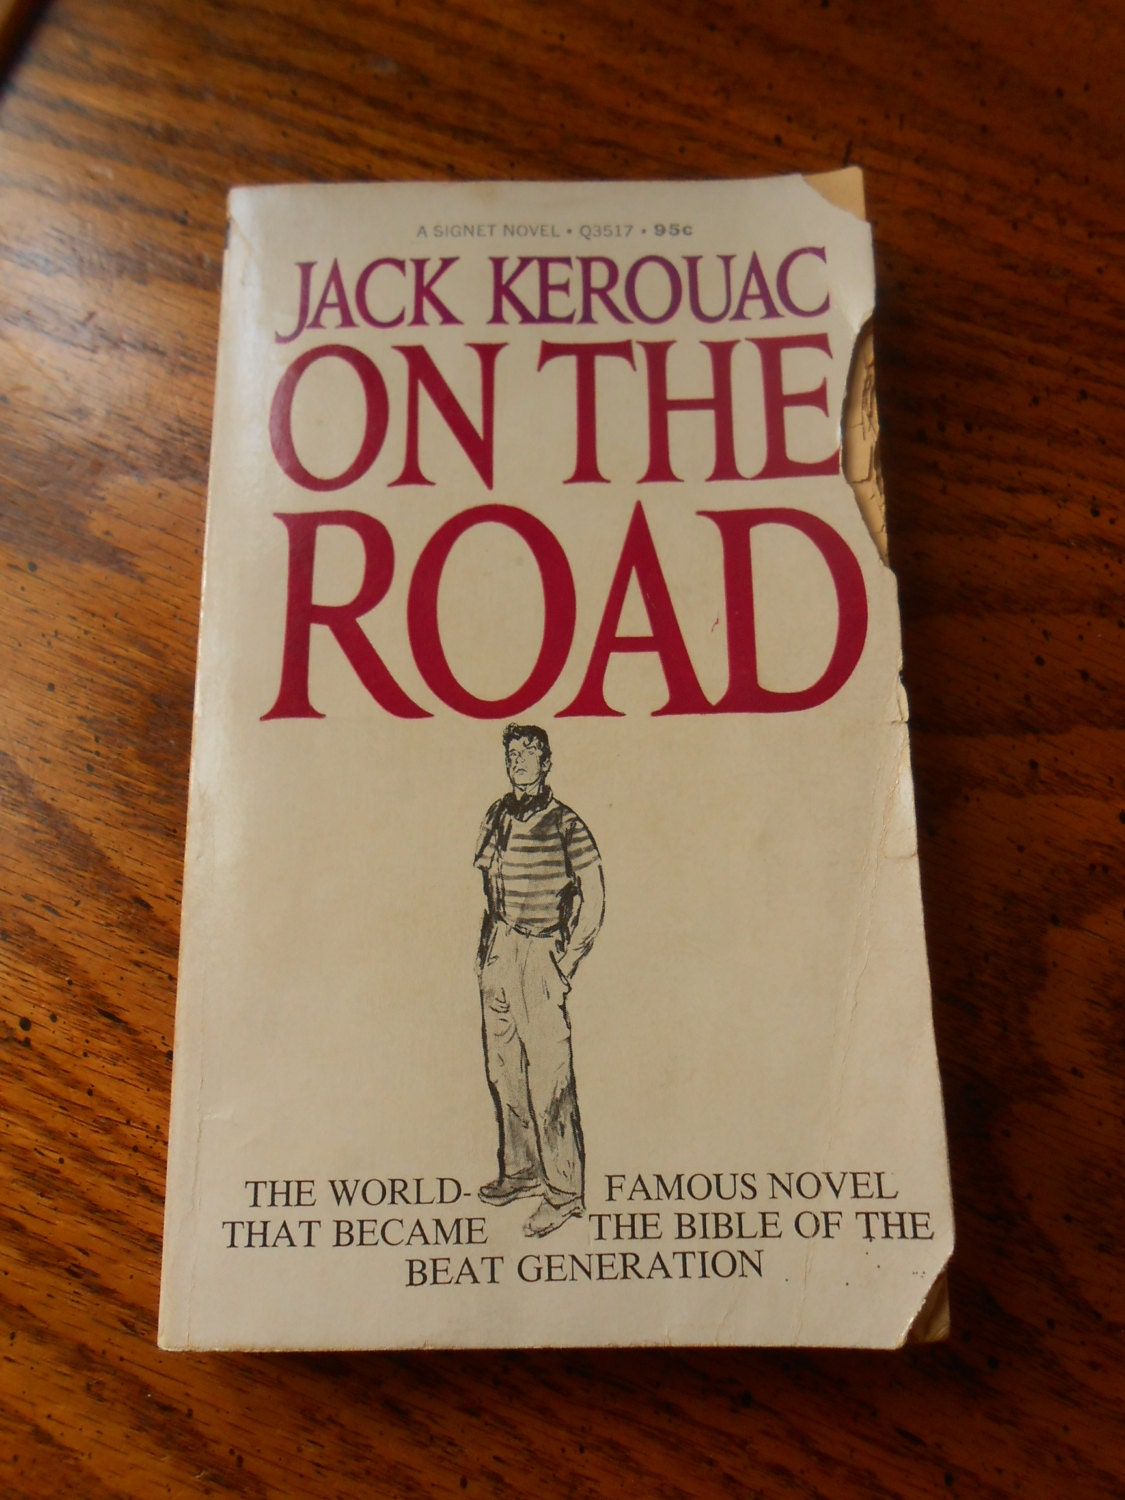 essay on jack kerouac s on Essays, term papers, book reports, research papers on poetry free papers and essays on jack kerouac we provide free model essays on poetry, jack kerouac reports, and term paper samples related to jack kerouac.